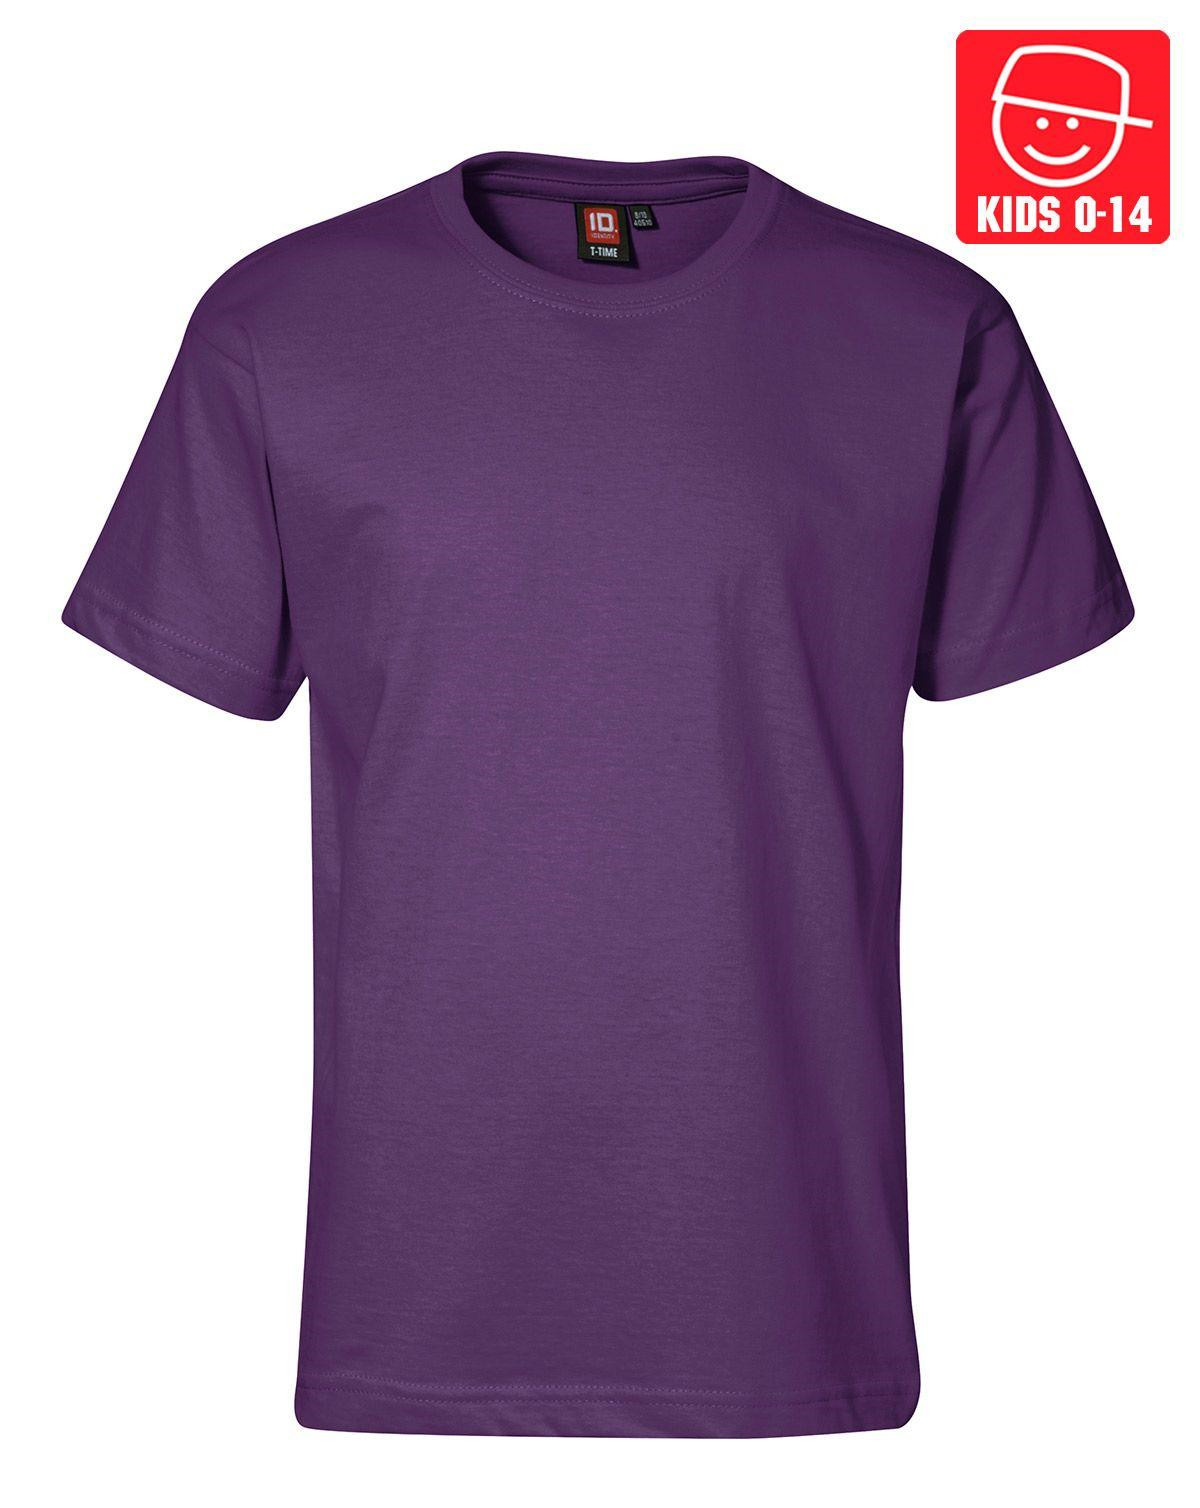 Image of   ID T-TIME T-shirt (Lilla, 122)